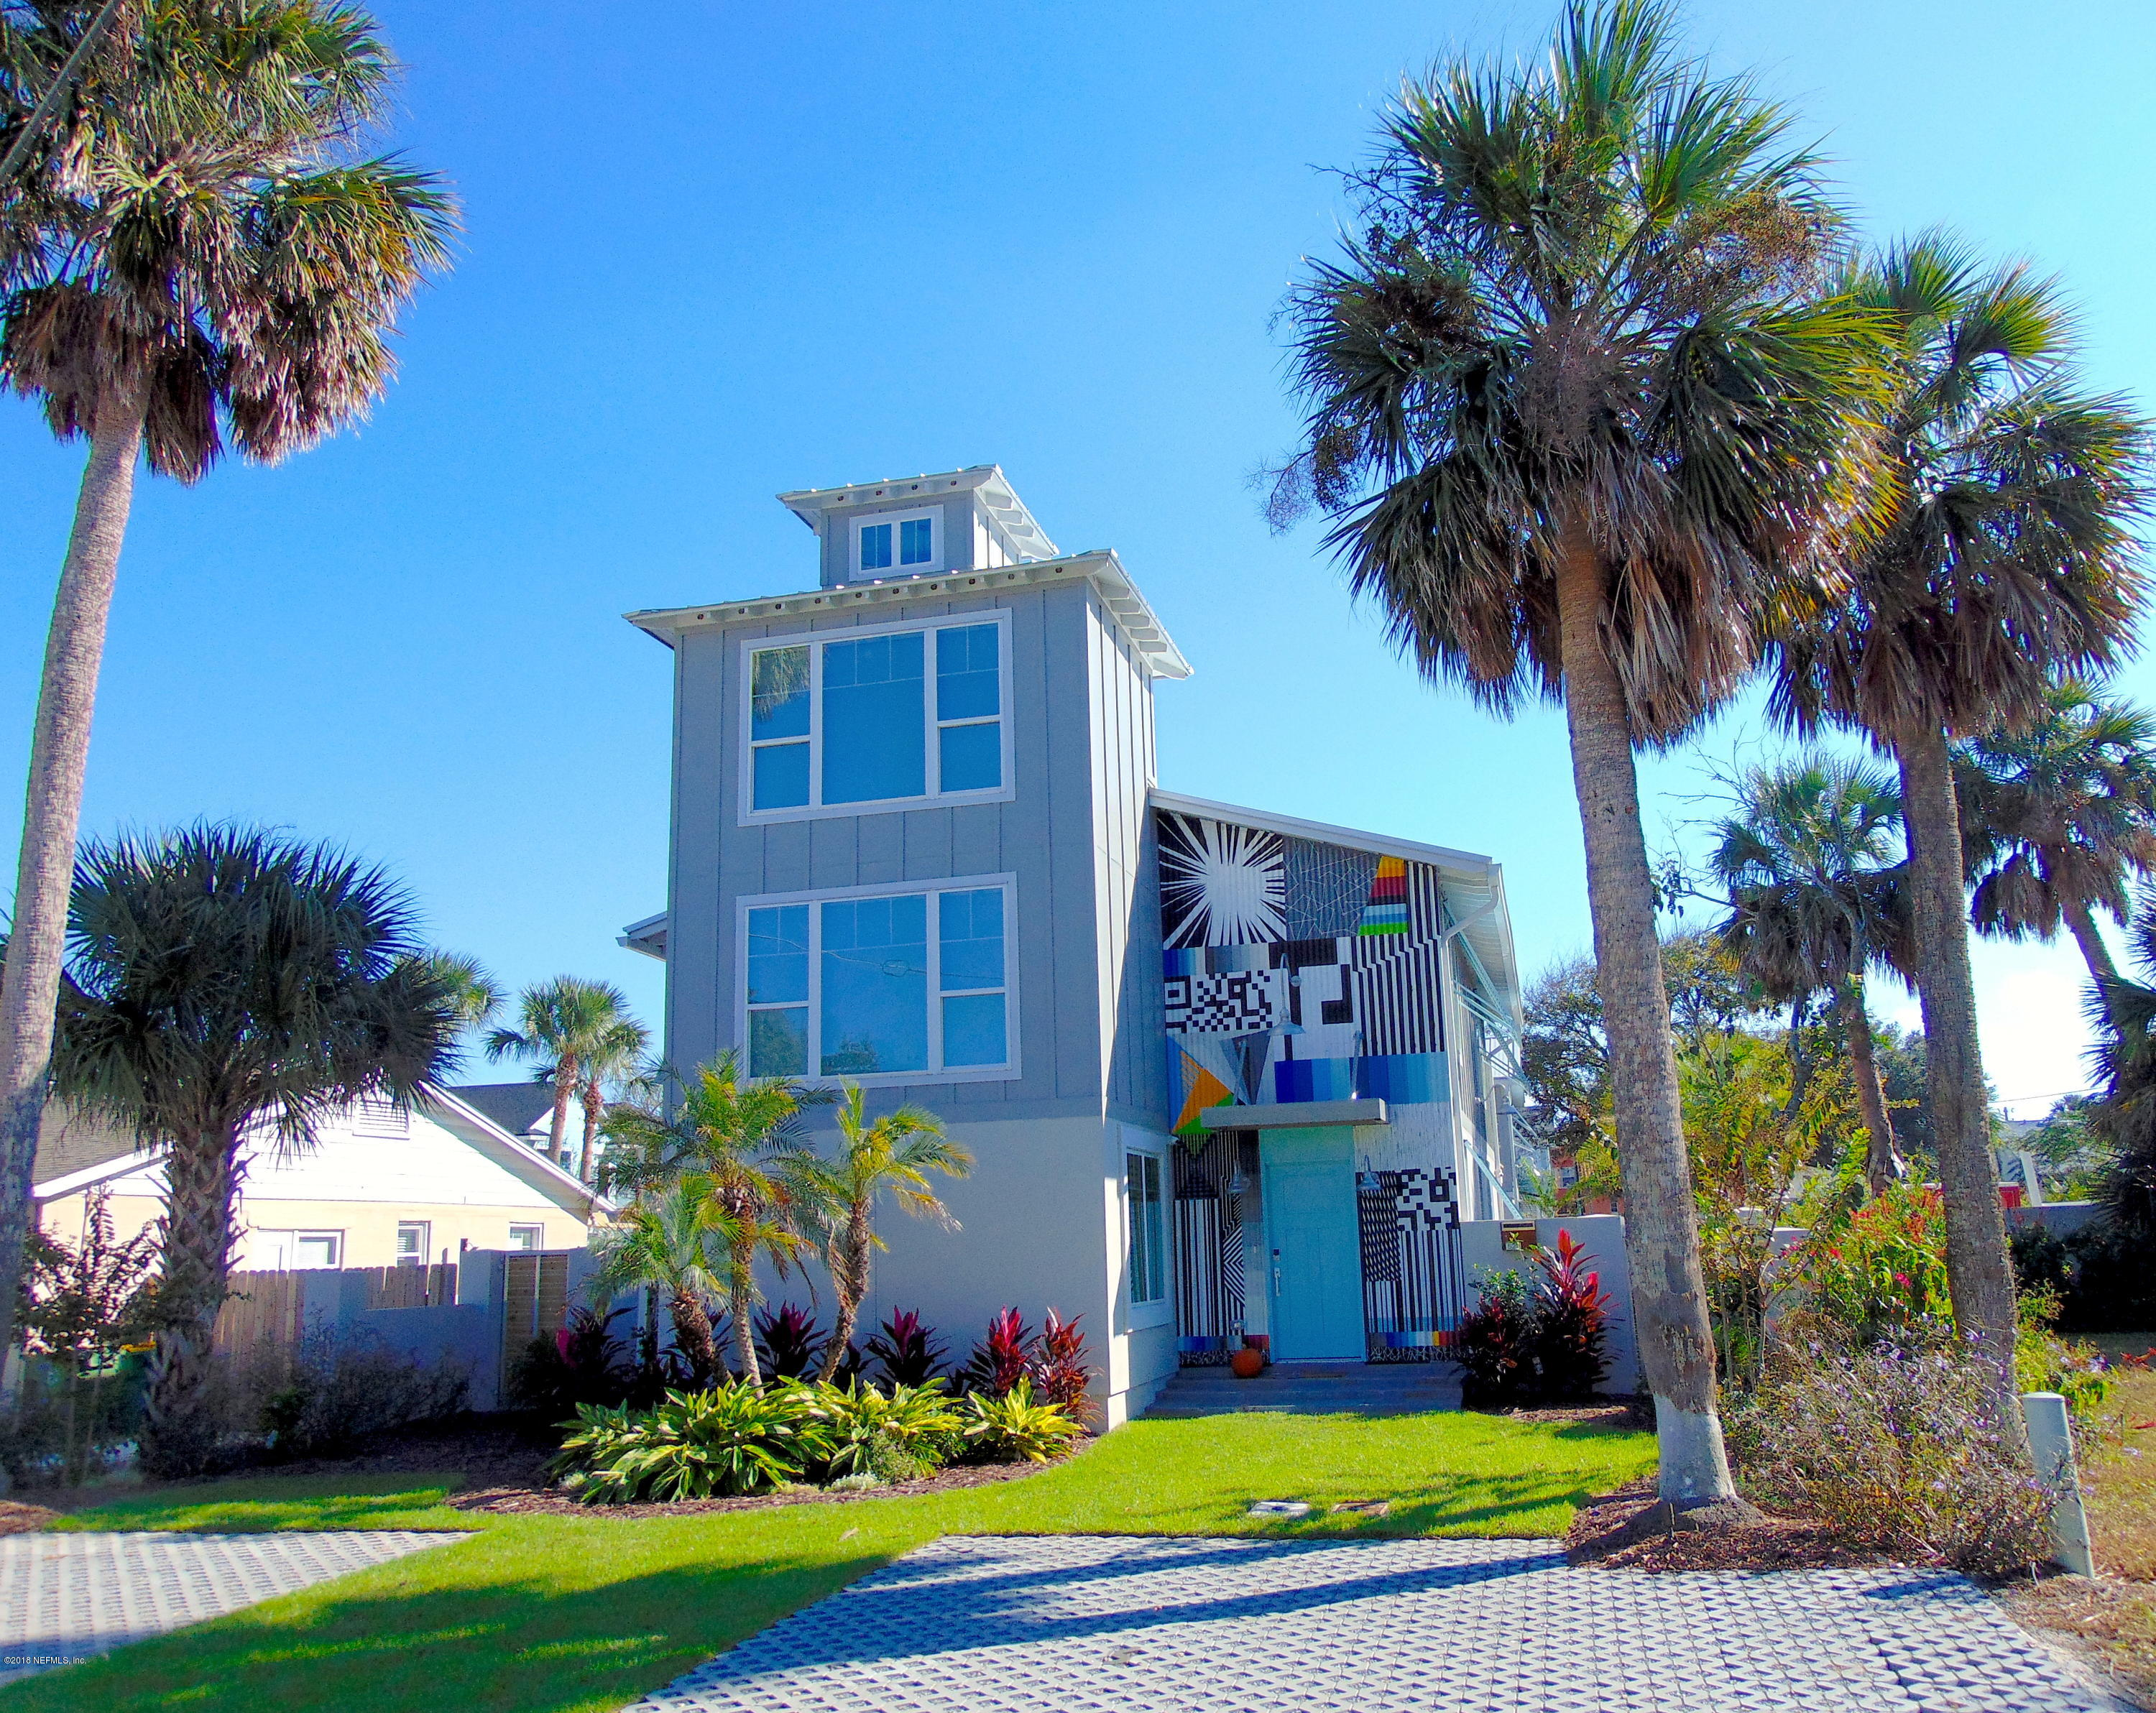 520 4TH, JACKSONVILLE BEACH, FLORIDA 32250, 5 Bedrooms Bedrooms, ,5 BathroomsBathrooms,Residential - single family,For sale,4TH,964644